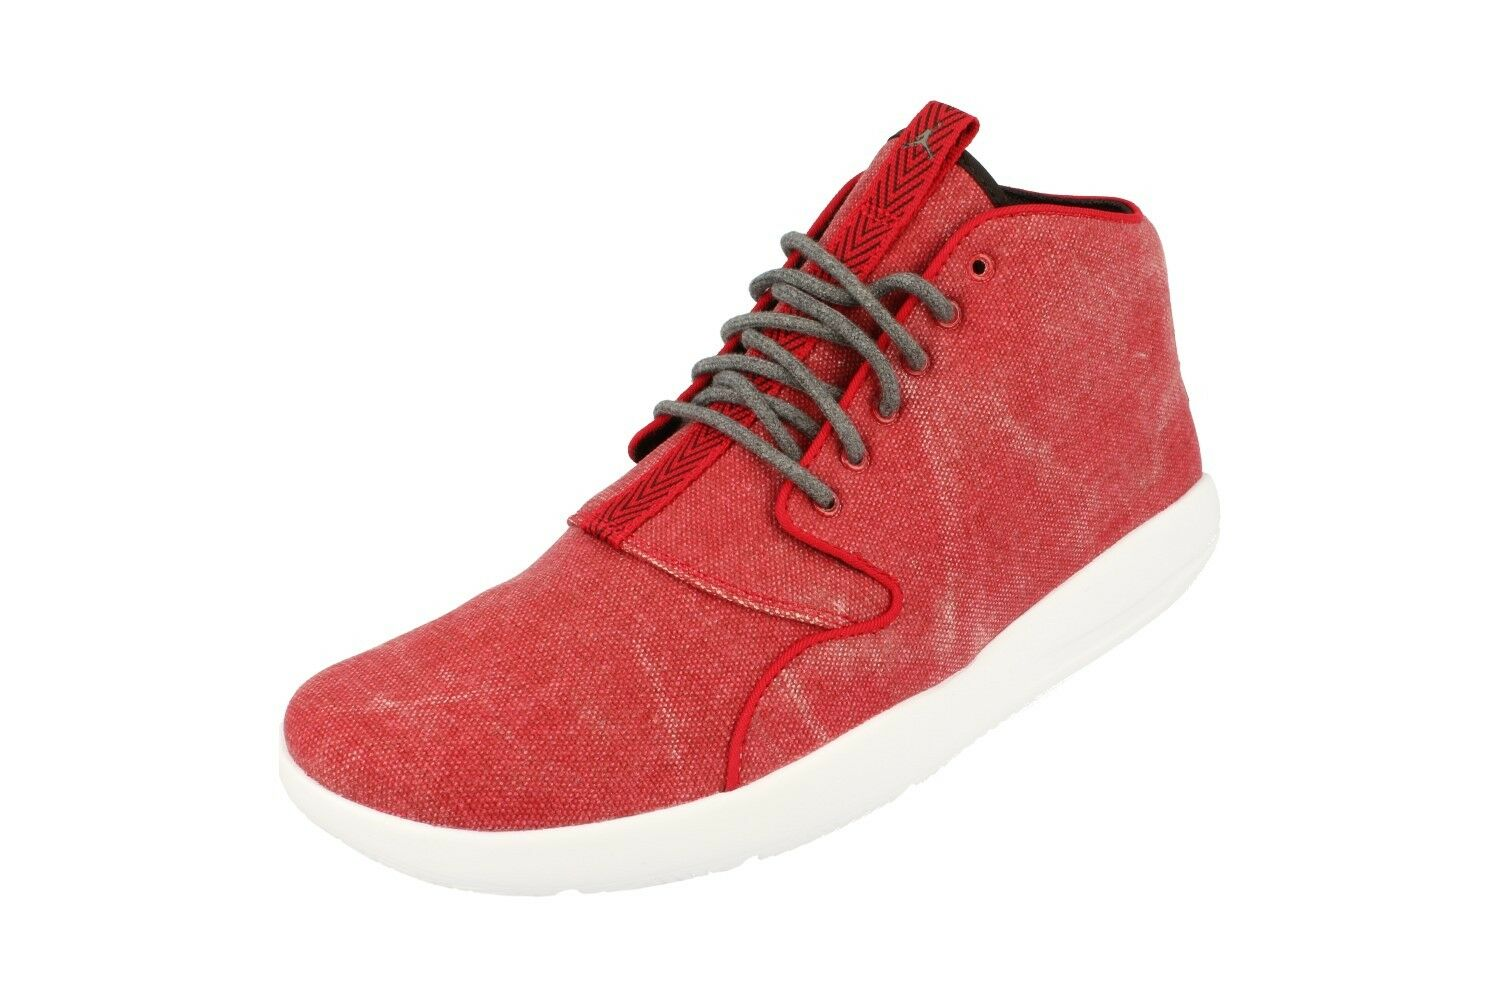 Nike Trainers Air Jordan Eclipse Chukka Mens Trainers Nike 881453 Sneakers Shoes 600 edb39d